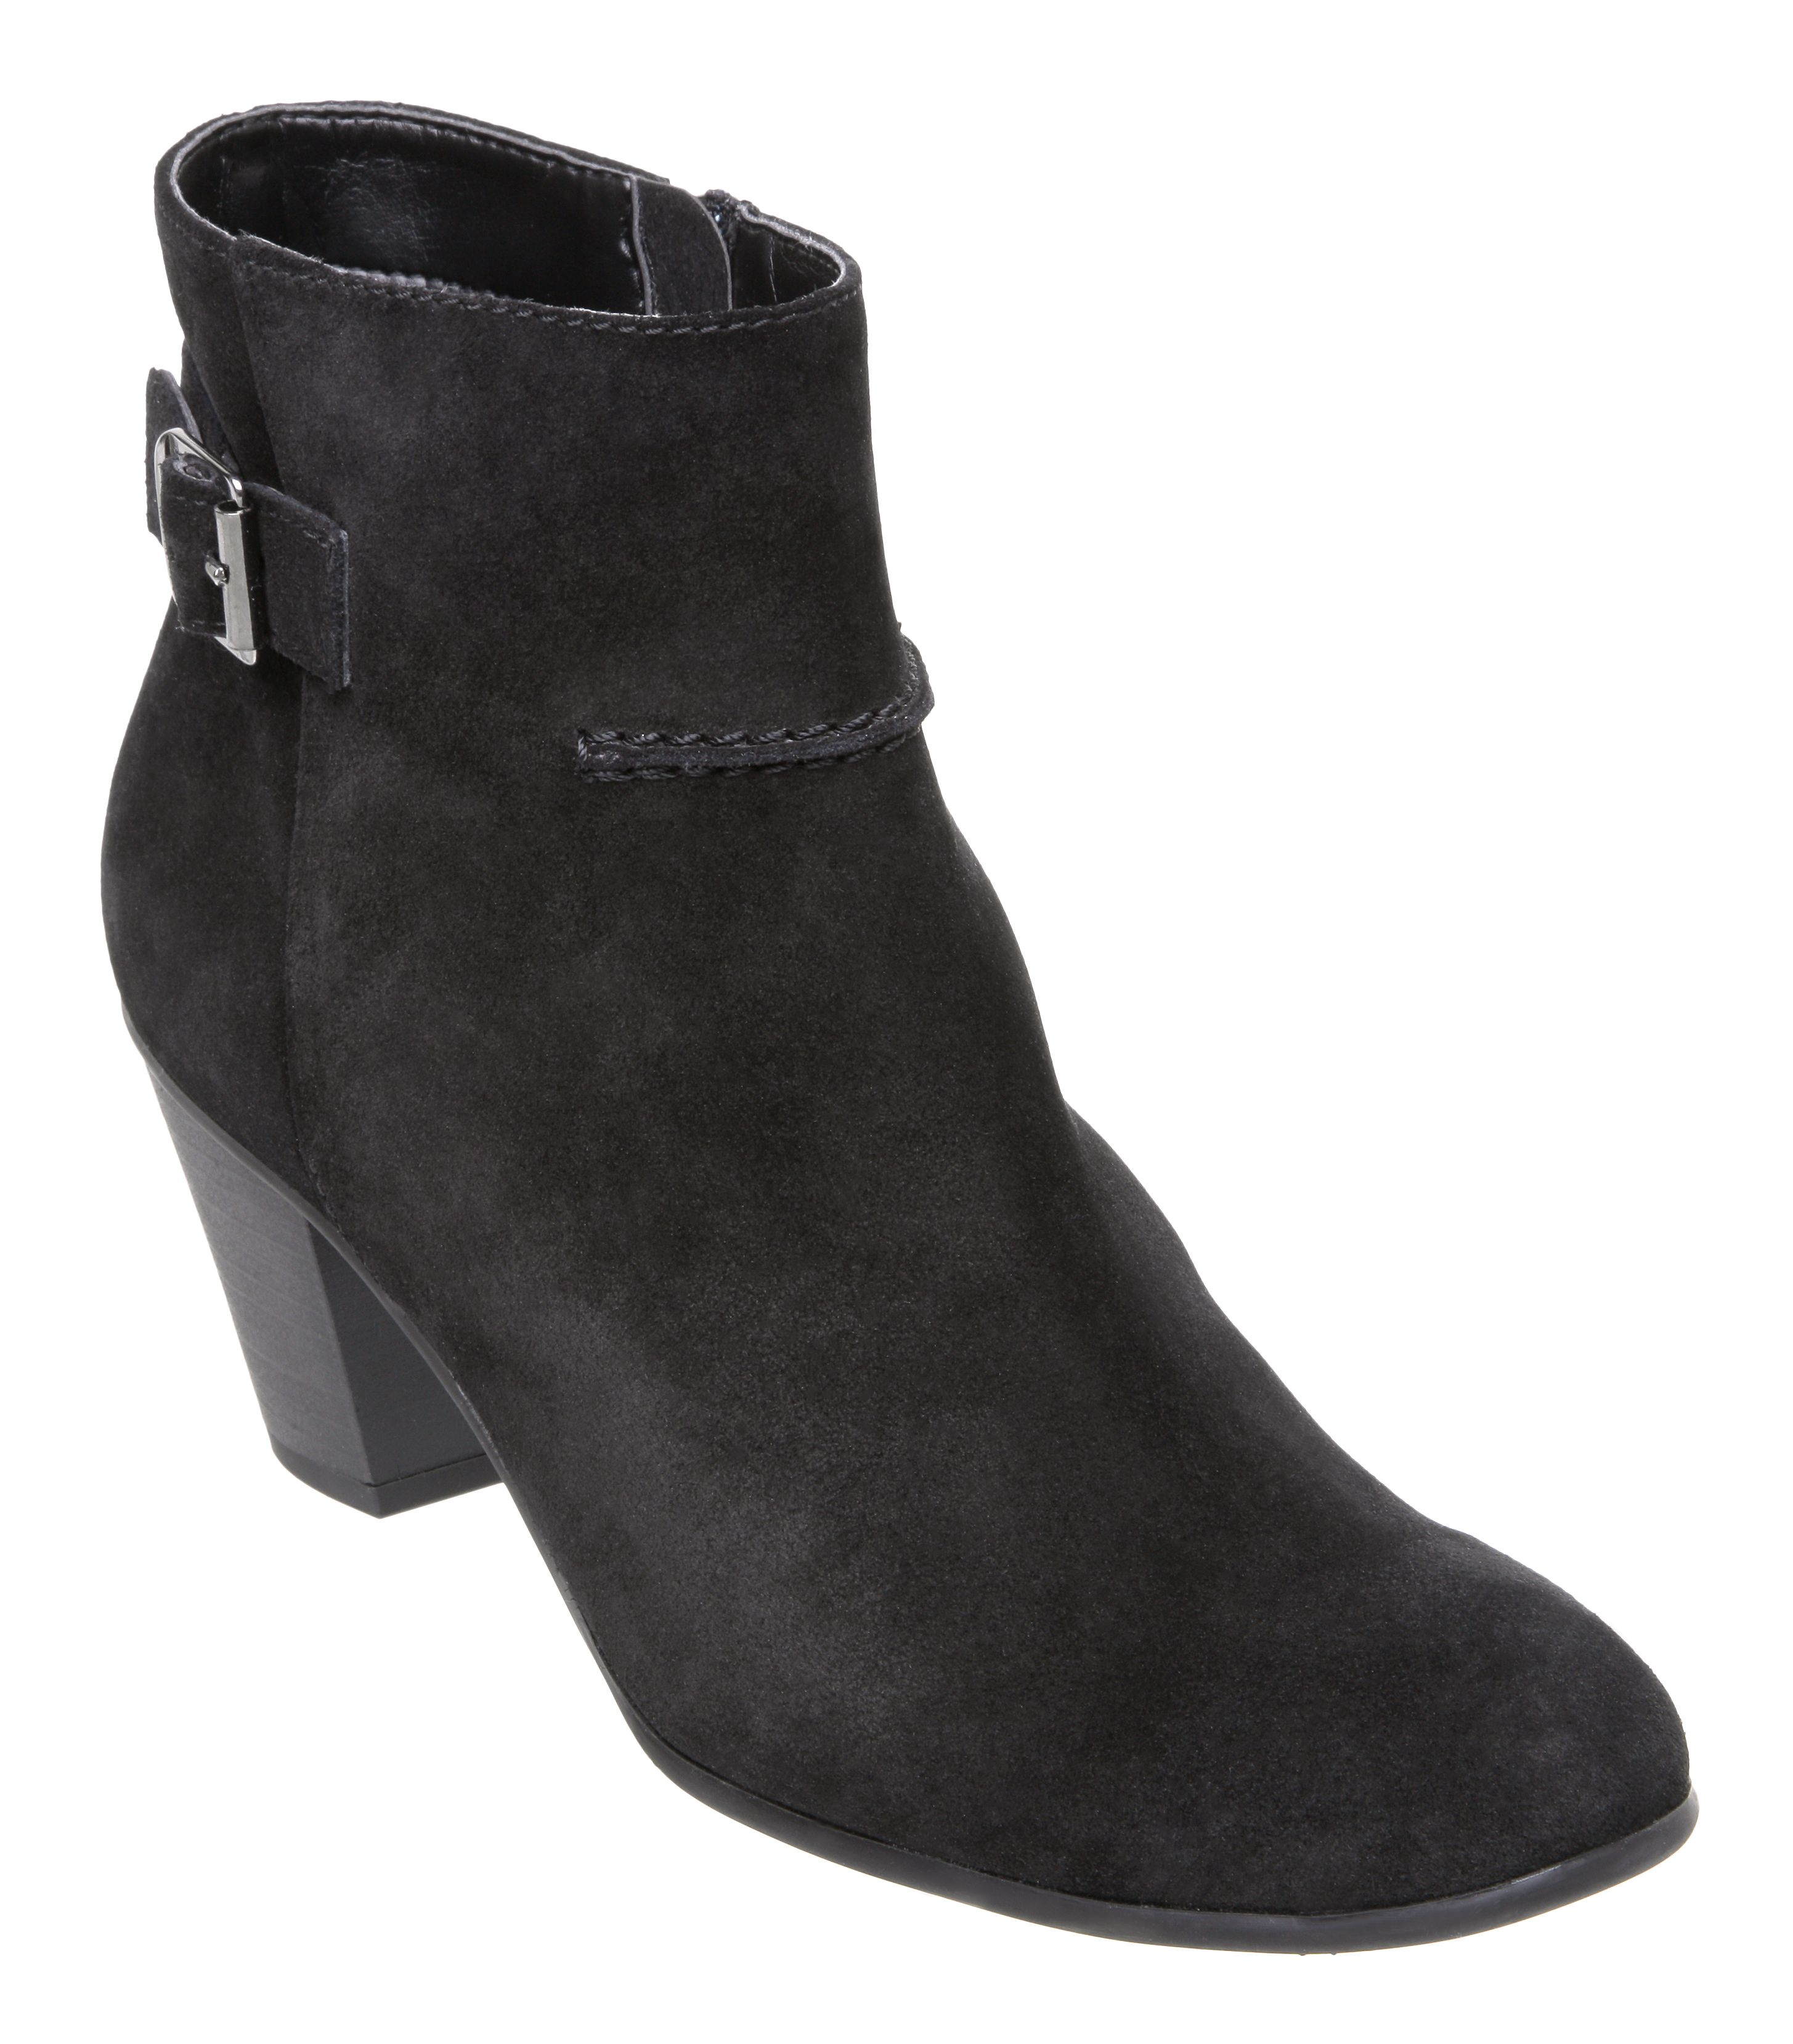 Spain e mid heel buckle detail boots